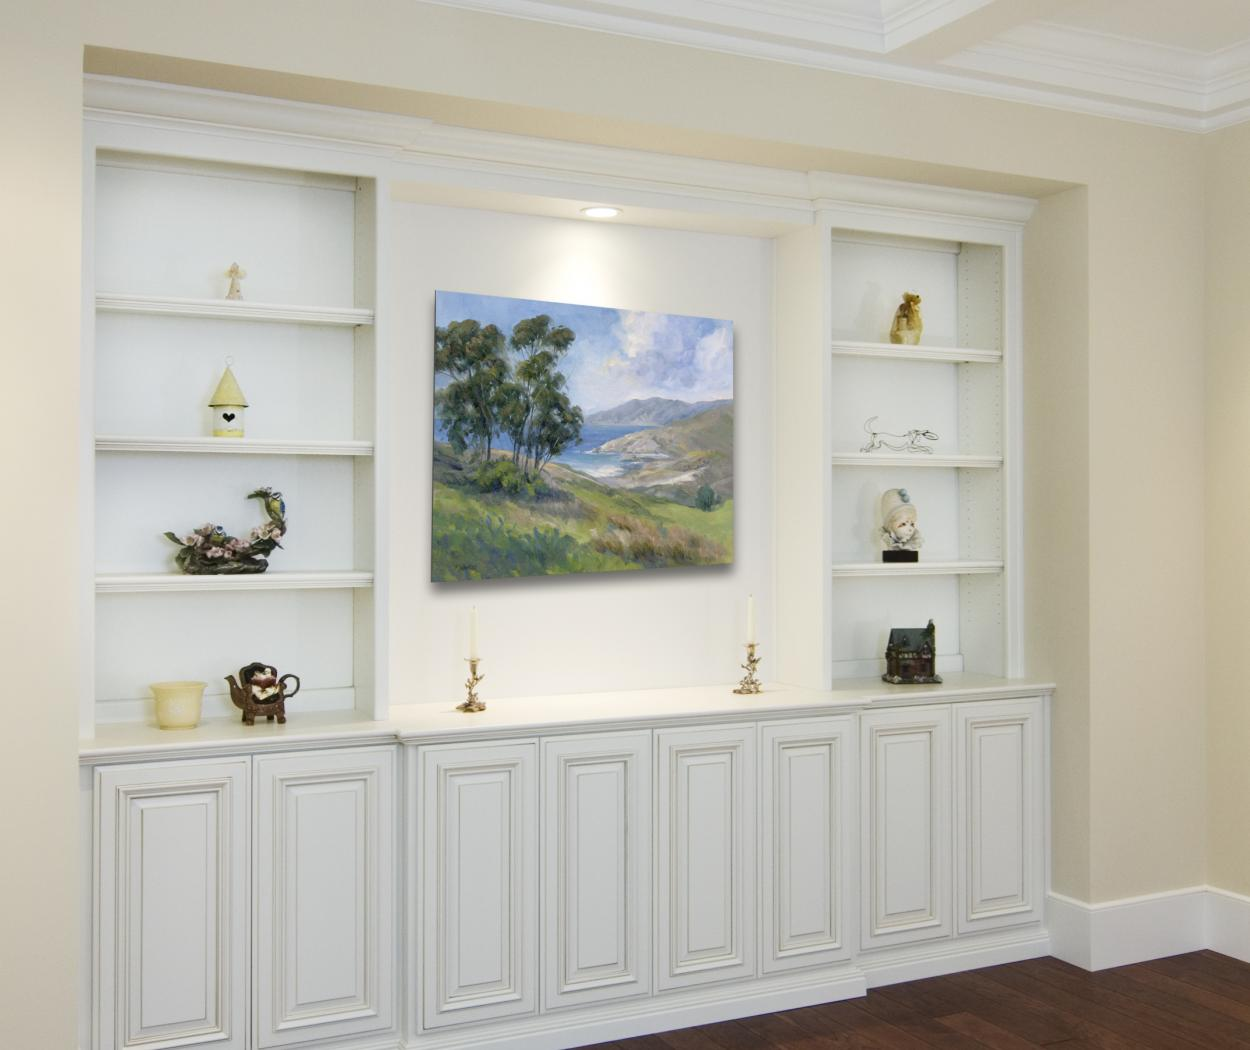 White Traditional Family Room Built-In with Open Shelves and Beautiful Raised Paneled Doors